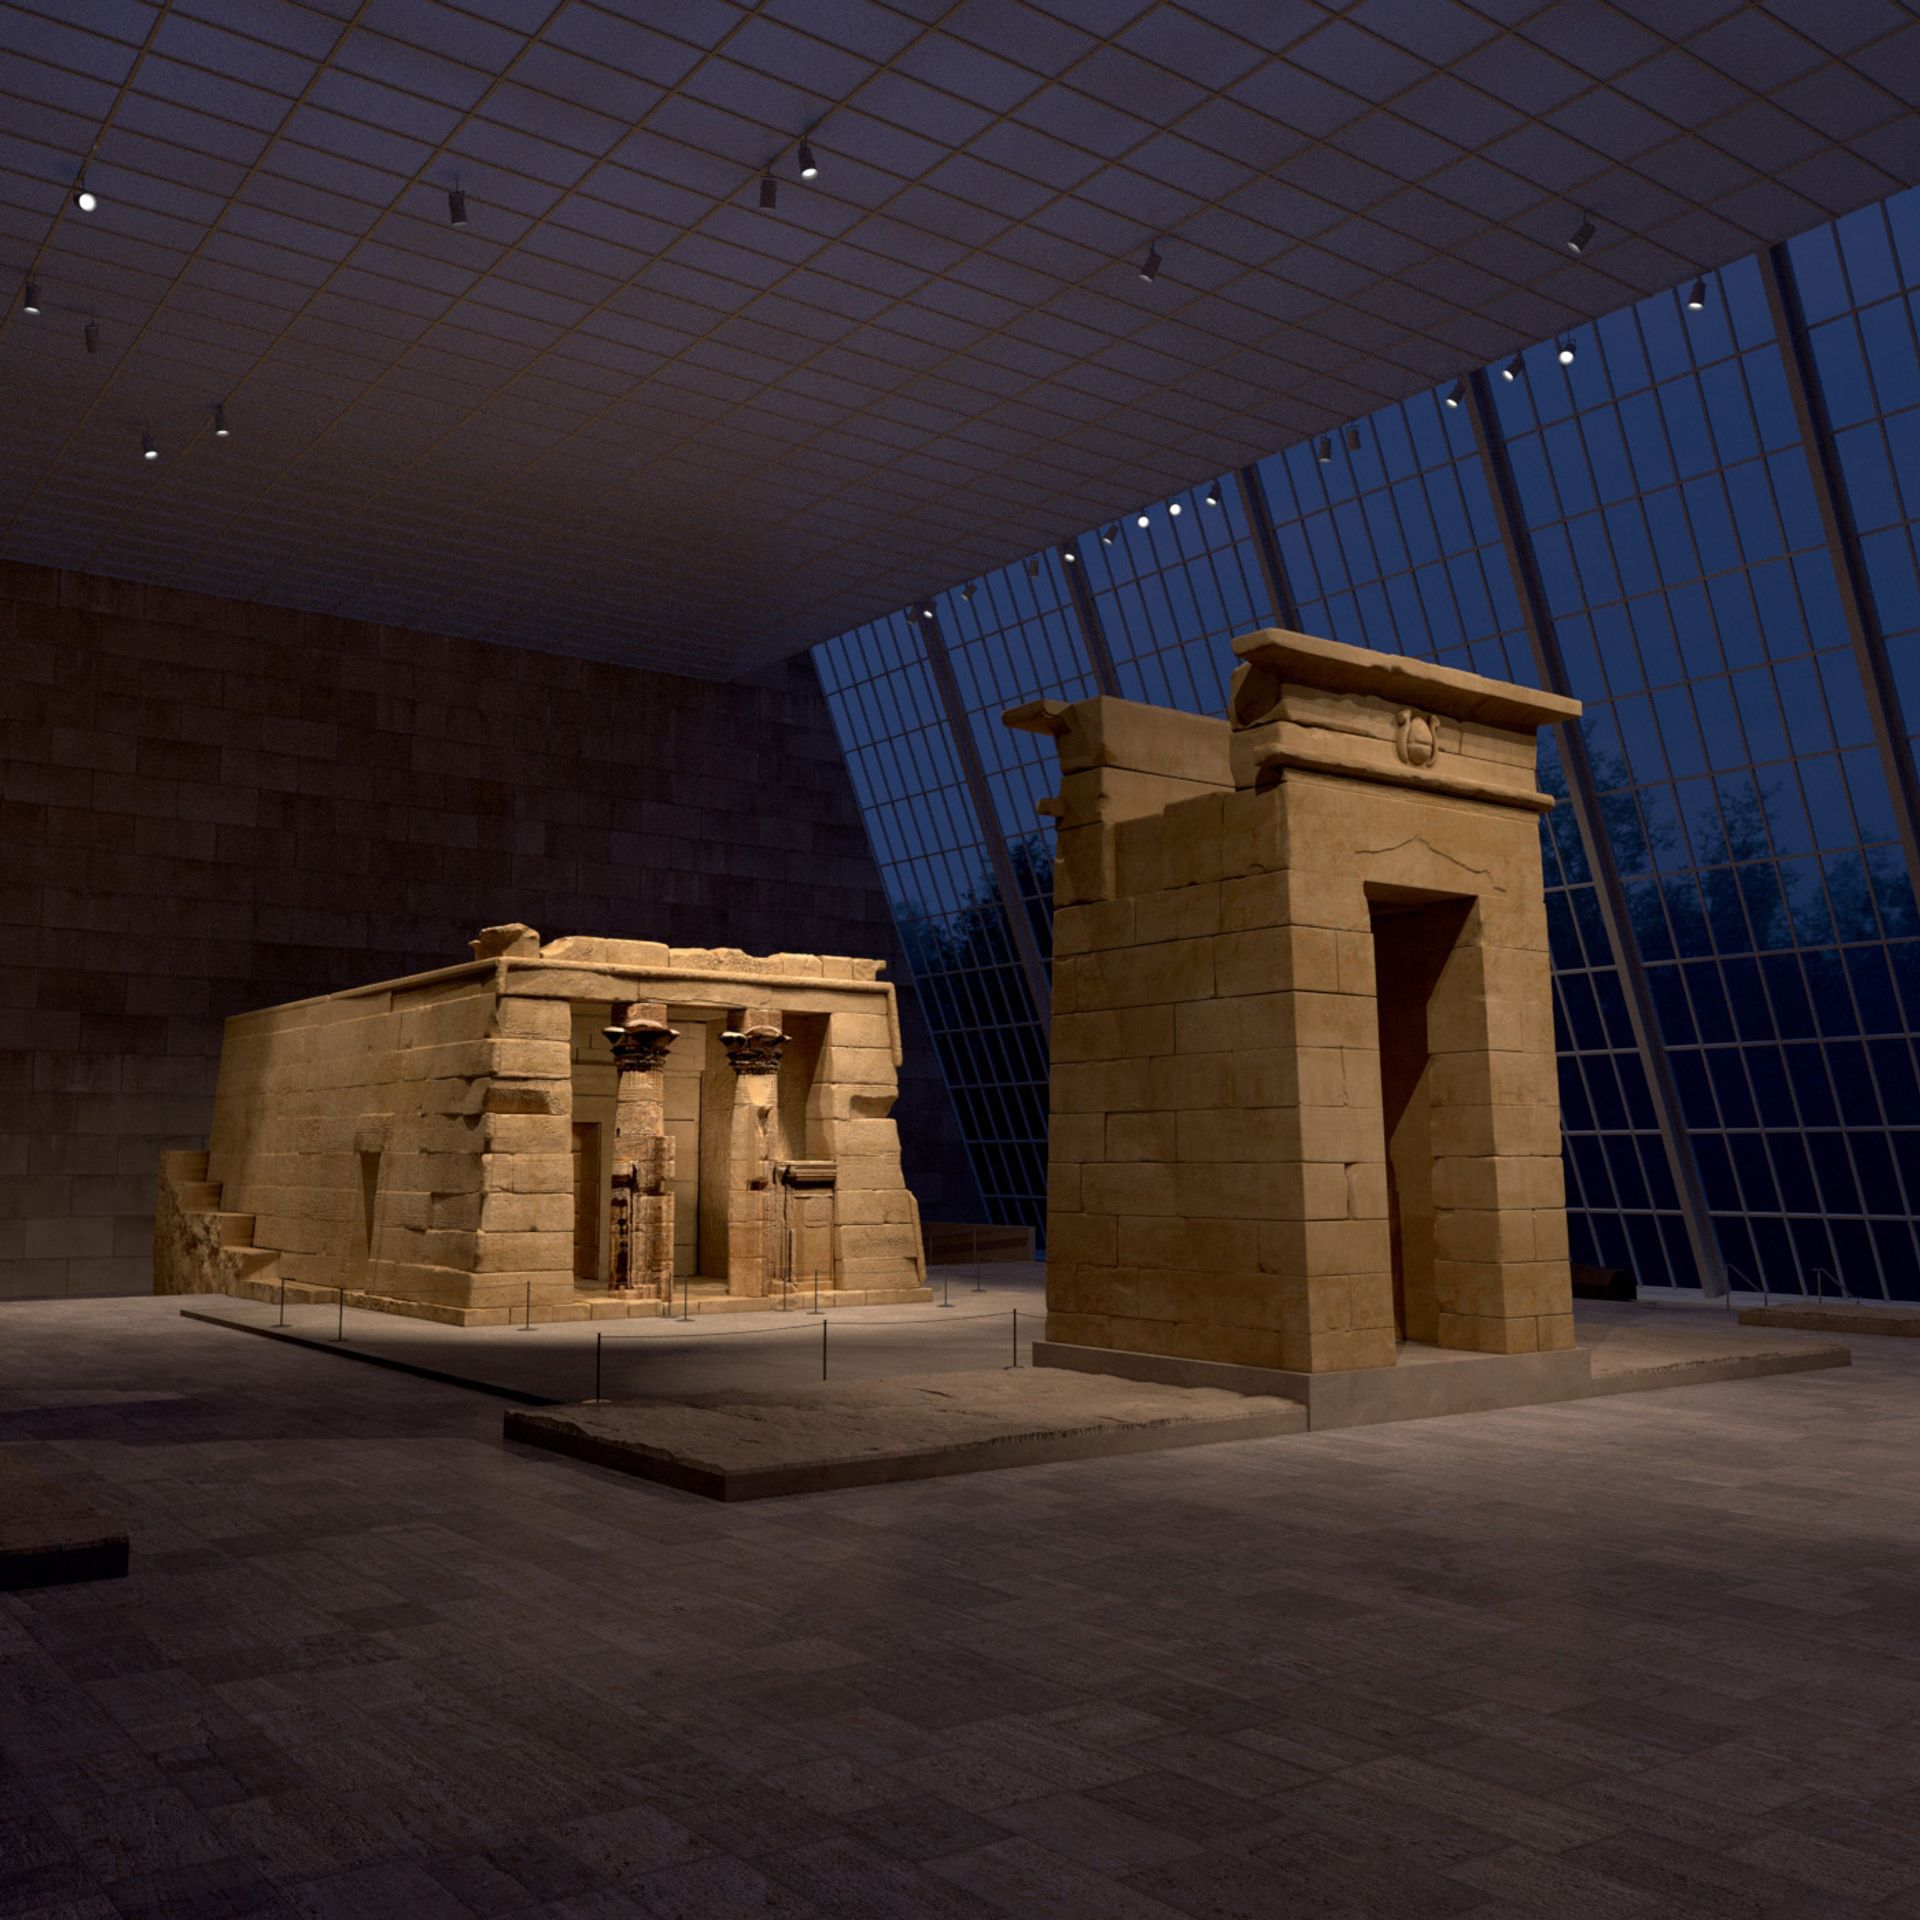 The Temple of Dendur, as experienced through the Metropolitan Museum of Art's new virtual and gaming experience Courtesy of the Metropolitan Museum of Art and Verizon